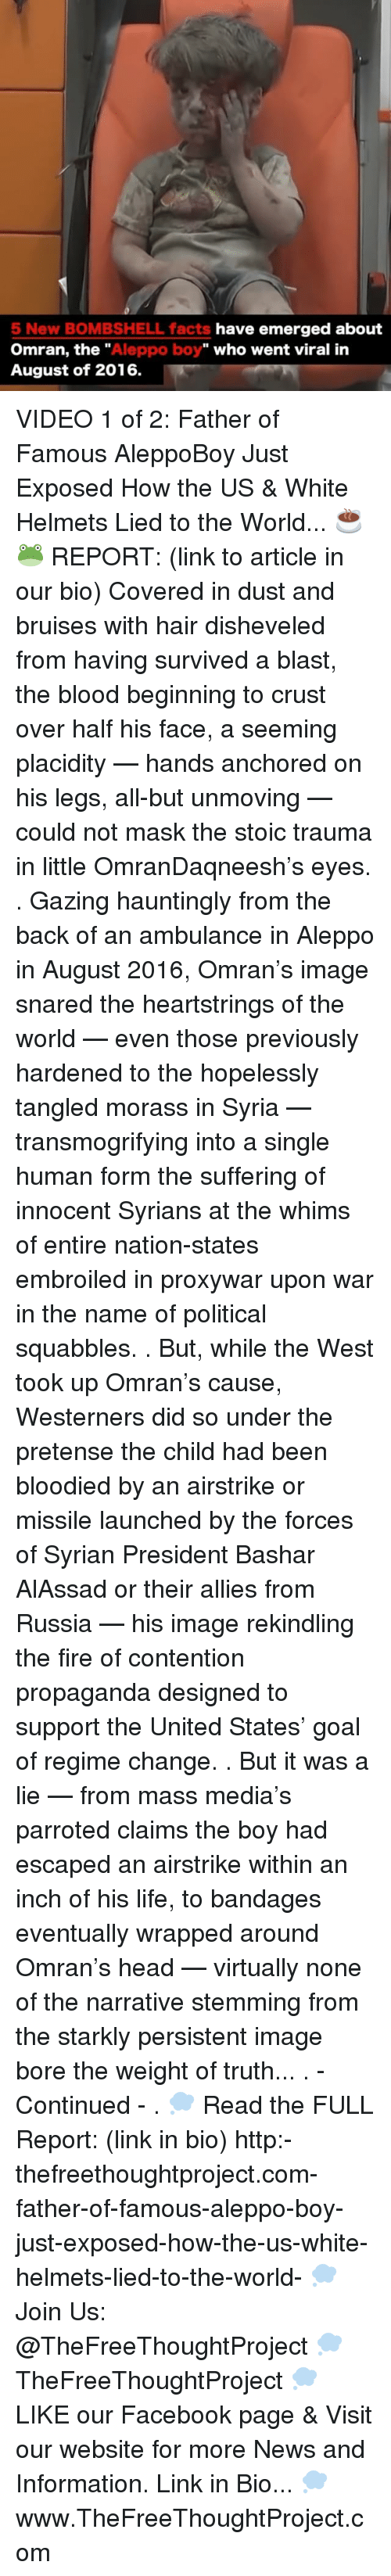 """Facebook, Facts, and Fire: 5 New BOMBSHELL facts  have emerged about  Omran, the  Aleppo boy"""" who went viral in  August of 2016. VIDEO 1 of 2: Father of Famous AleppoBoy Just Exposed How the US & White Helmets Lied to the World... ☕️🐸 REPORT: (link to article in our bio) Covered in dust and bruises with hair disheveled from having survived a blast, the blood beginning to crust over half his face, a seeming placidity — hands anchored on his legs, all-but unmoving — could not mask the stoic trauma in little OmranDaqneesh's eyes. . Gazing hauntingly from the back of an ambulance in Aleppo in August 2016, Omran's image snared the heartstrings of the world — even those previously hardened to the hopelessly tangled morass in Syria — transmogrifying into a single human form the suffering of innocent Syrians at the whims of entire nation-states embroiled in proxywar upon war in the name of political squabbles. . But, while the West took up Omran's cause, Westerners did so under the pretense the child had been bloodied by an airstrike or missile launched by the forces of Syrian President Bashar AlAssad or their allies from Russia — his image rekindling the fire of contention propaganda designed to support the United States' goal of regime change. . But it was a lie — from mass media's parroted claims the boy had escaped an airstrike within an inch of his life, to bandages eventually wrapped around Omran's head — virtually none of the narrative stemming from the starkly persistent image bore the weight of truth... . - Continued - . 💭 Read the FULL Report: (link in bio) http:-thefreethoughtproject.com-father-of-famous-aleppo-boy-just-exposed-how-the-us-white-helmets-lied-to-the-world- 💭 Join Us: @TheFreeThoughtProject 💭 TheFreeThoughtProject 💭 LIKE our Facebook page & Visit our website for more News and Information. Link in Bio... 💭 www.TheFreeThoughtProject.com"""